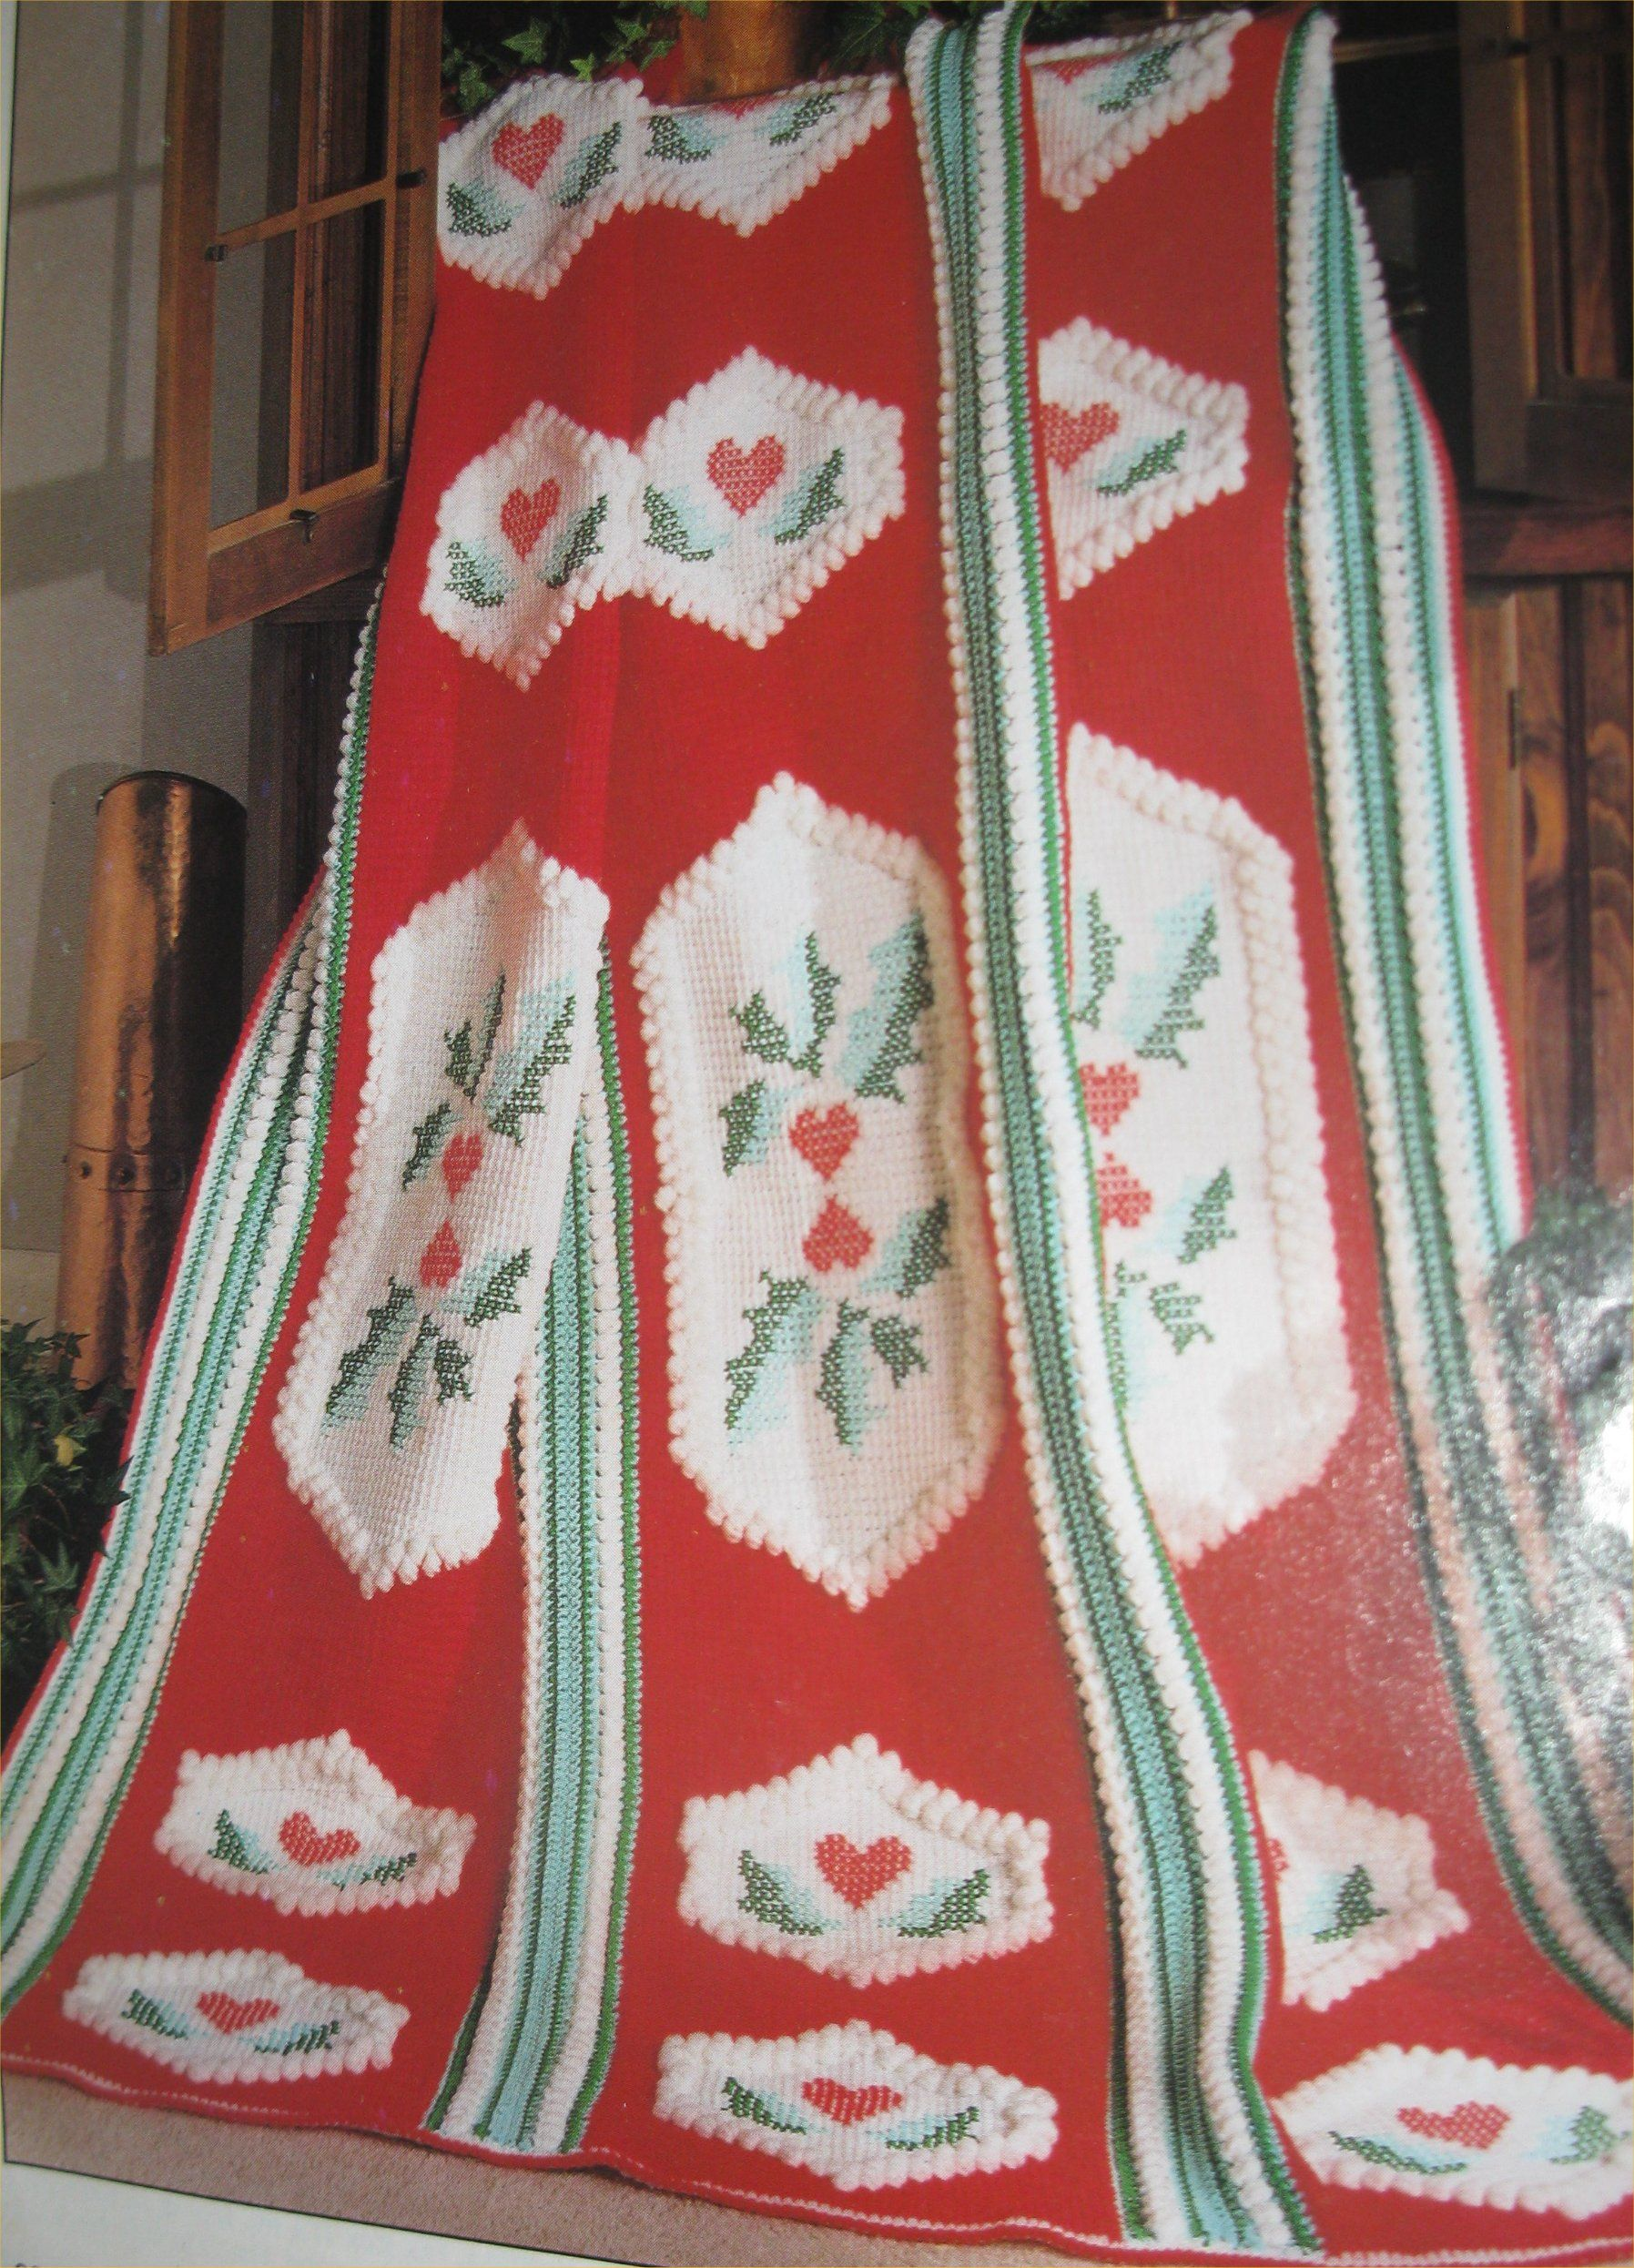 Crochet afghan holly and hearts designed by glenda winkleman crochet afghan holly and hearts designed by glenda winkleman made using red heart yarn bankloansurffo Choice Image